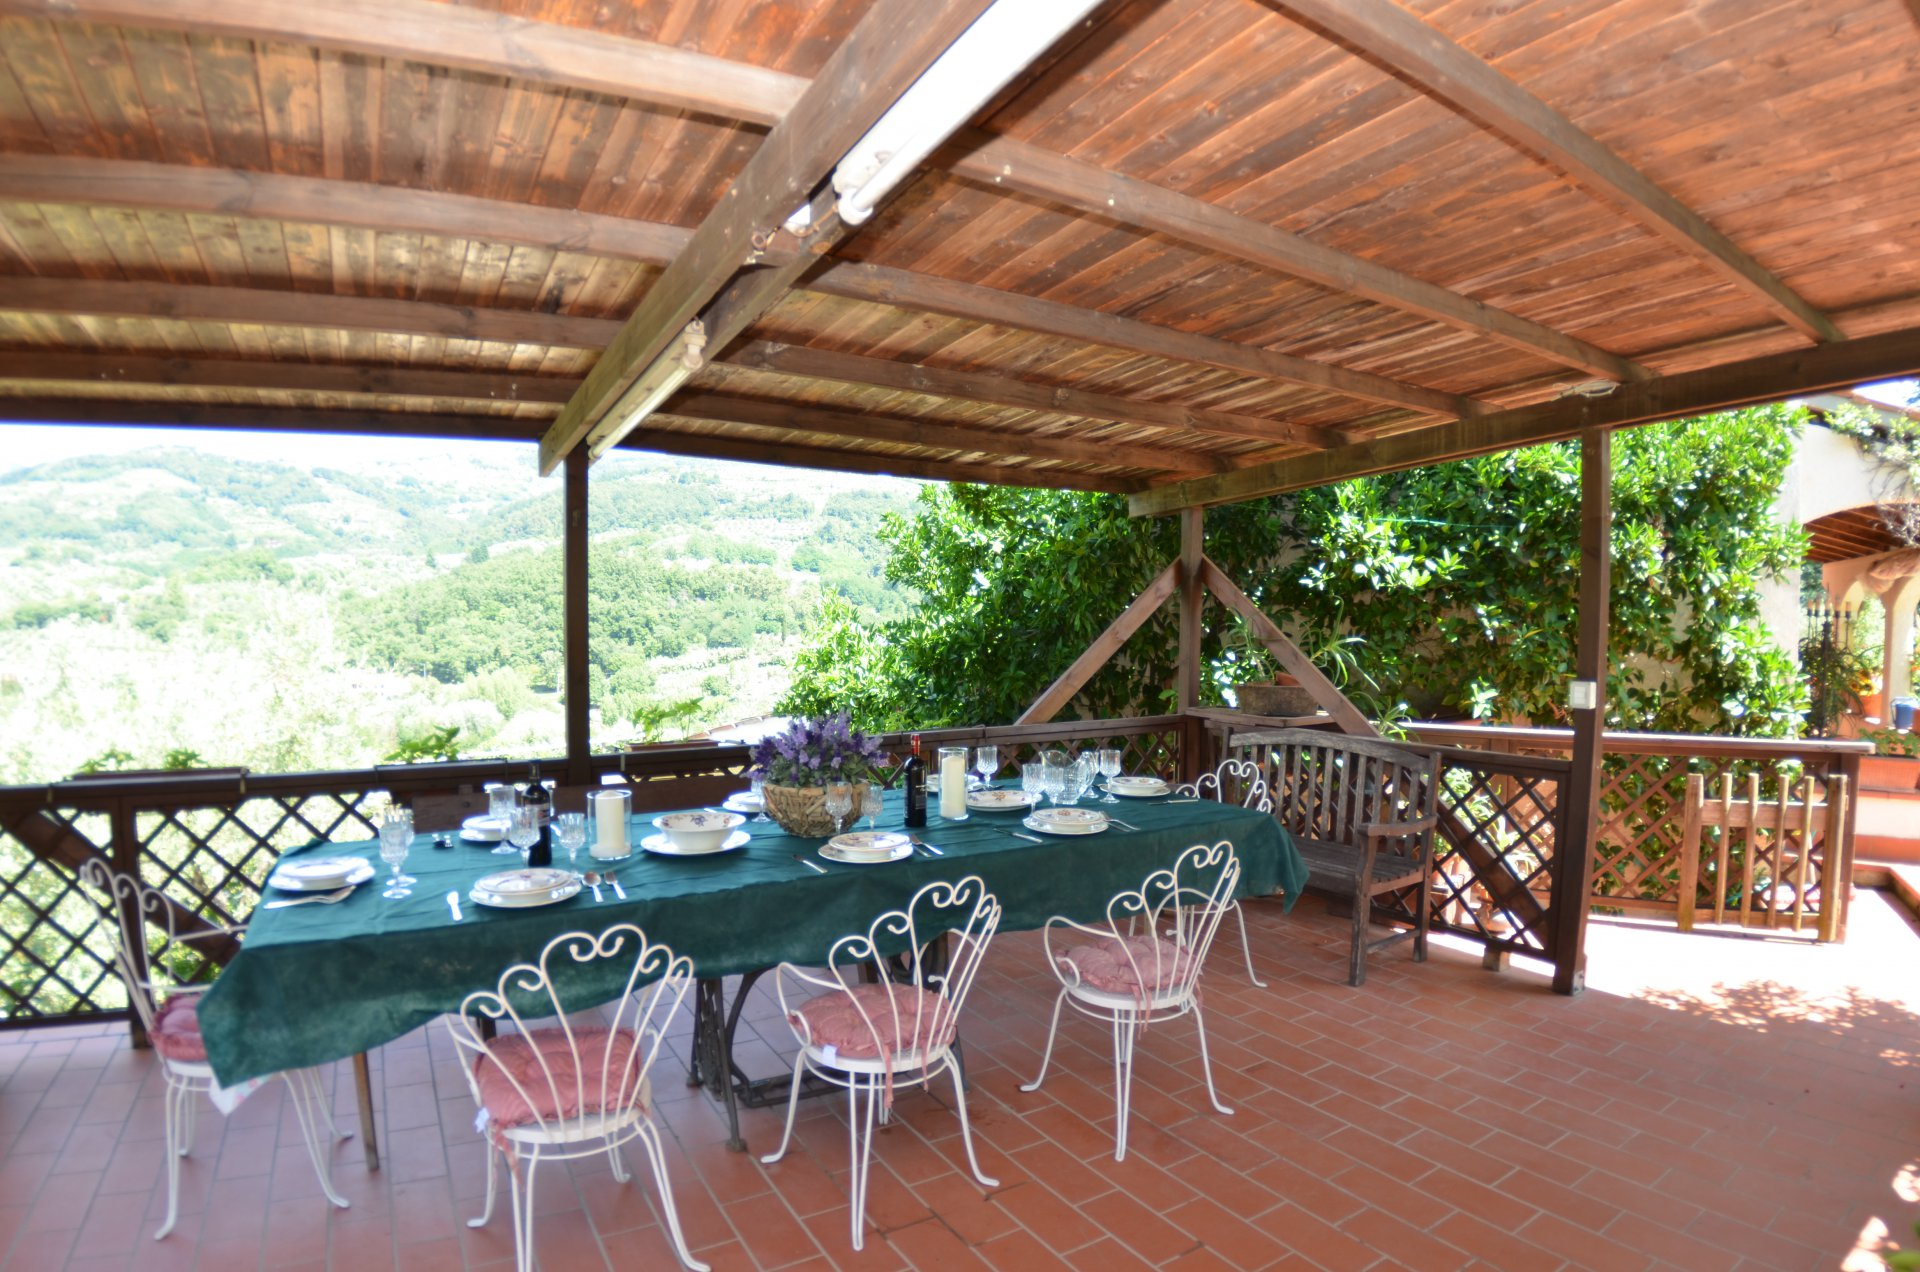 ITALY, TUSCANY, MONTECATINI TERME, HOUSE WITH POOL,  4 PERSONS